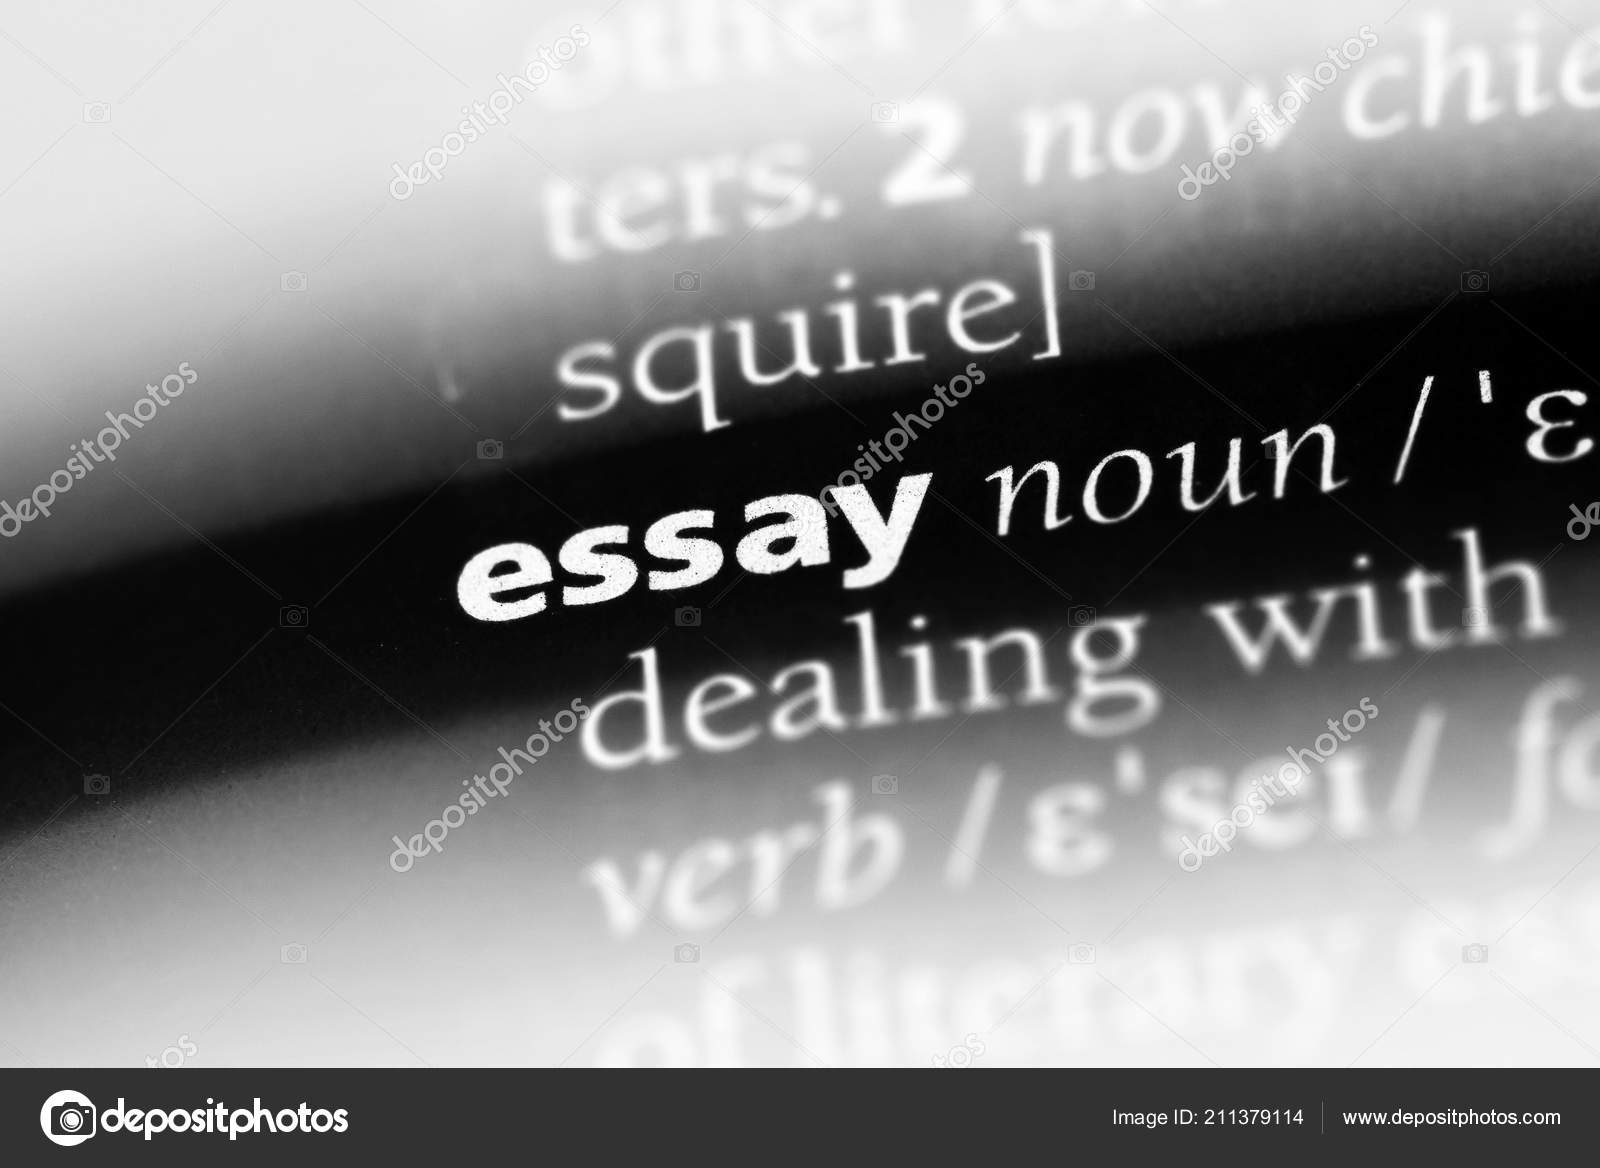 essay dictionary could outrage What is a narrative essay essentially, it is a free-form story usually told in first or third person narrative essays are a popular type of academic writing both high school and college students write loads of them these essays show your creativity, character, and ability to tell a compelling story.